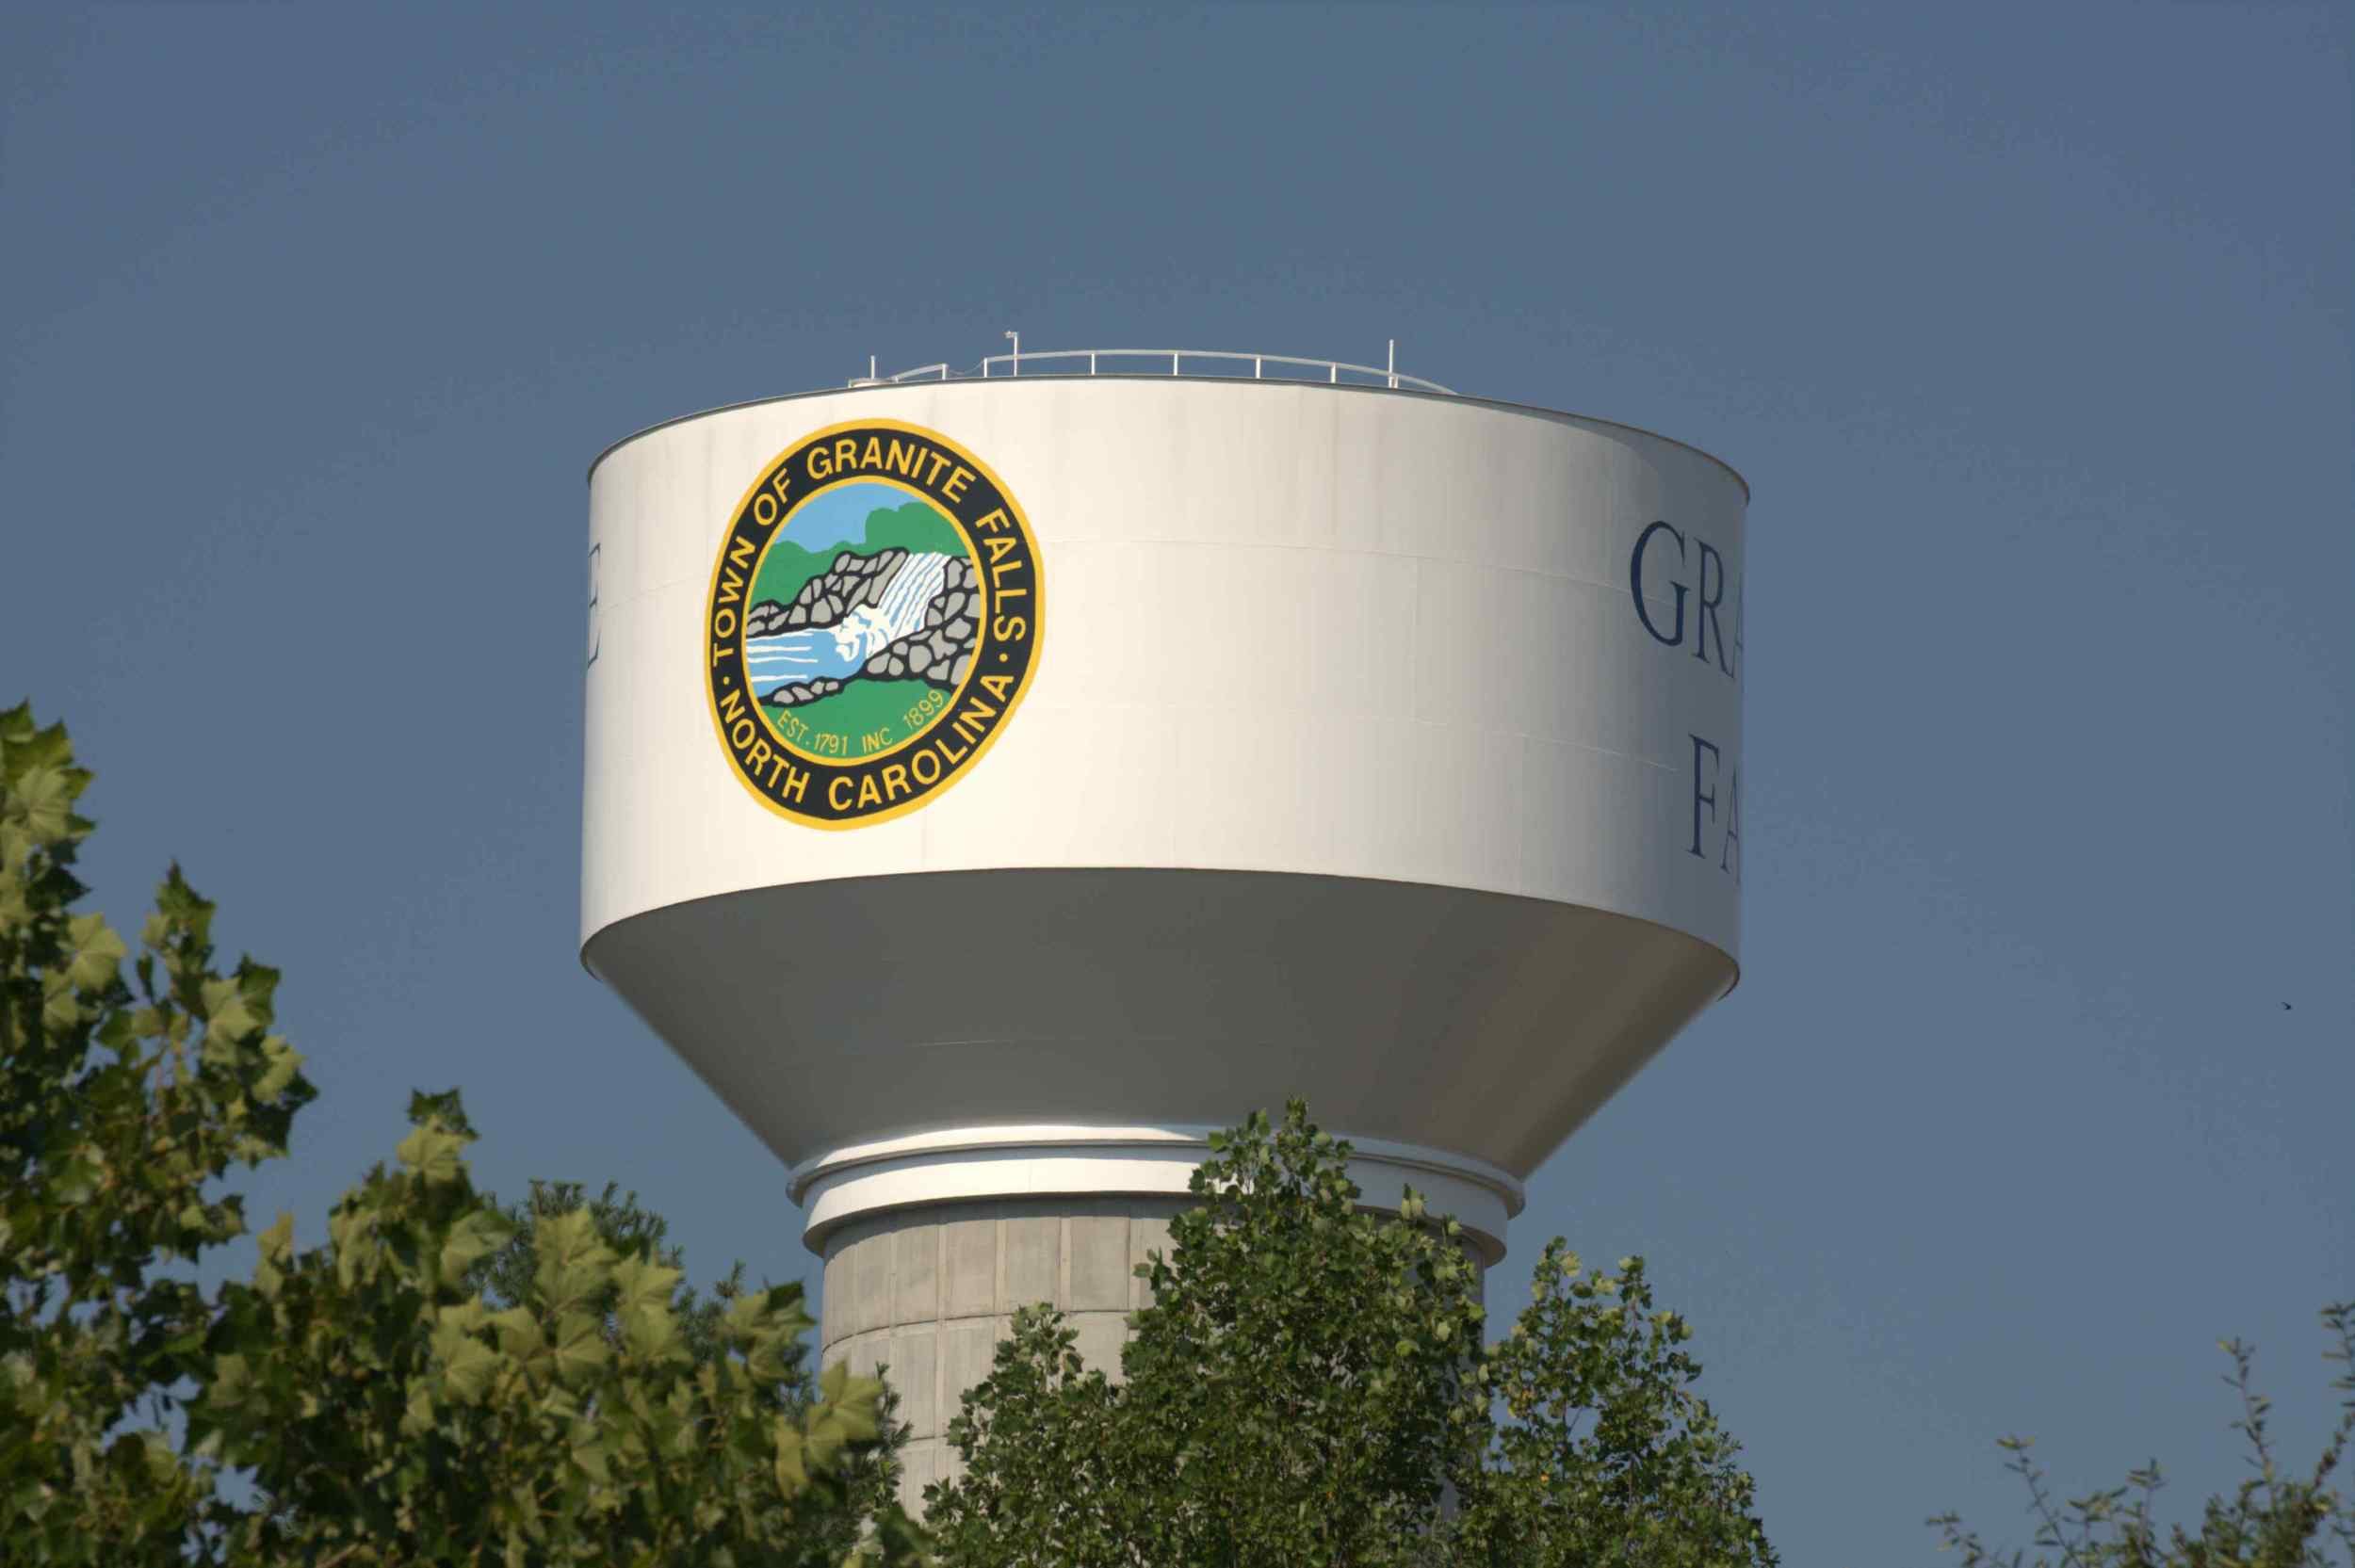 Granite Falls' Elevated Water Tank